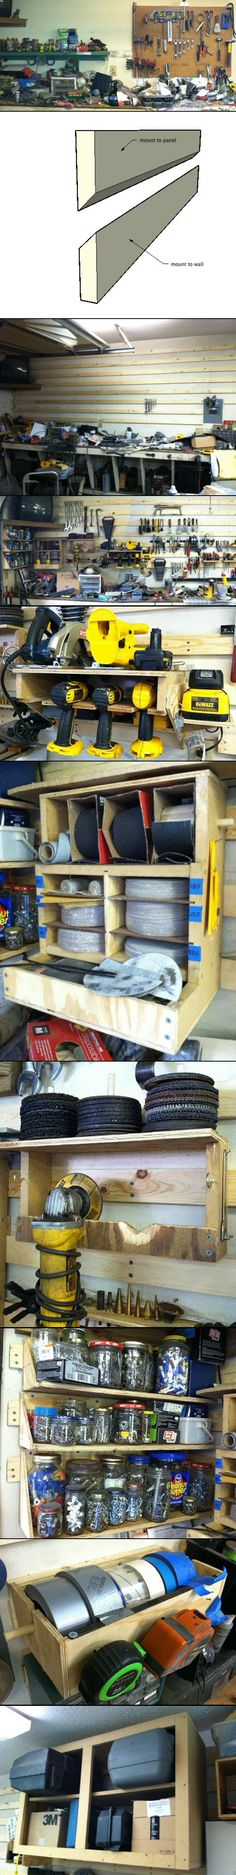 French Cleat System for an auto garage - From: http://67-72chevytrucks.com/vboard/showthread.php?t=570267